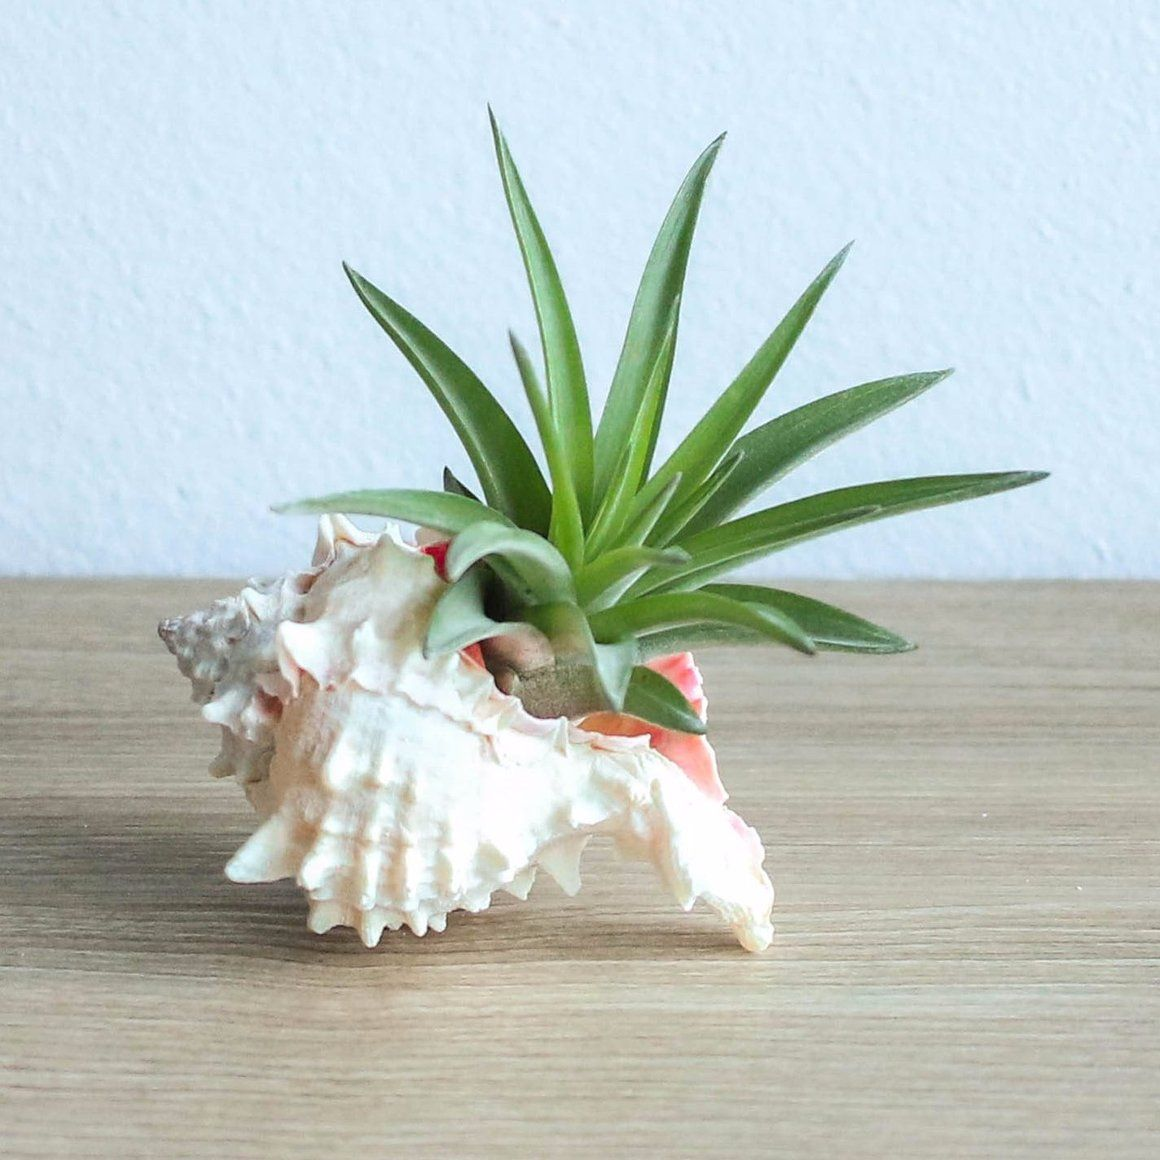 Pink Murex Seashell with Velutina Air Plant is part of Air plant display, Air plant terrarium, Air plants, Air plants wholesale, Plants, Air plants decor - Save up to 35% on a Set of 3 or 6 Murex Shell Arrangements Visit our Wholesale page for orders of 10 or more at great prices Beautiful Pink Murex Seashell arrangement with a medium size handselected air plant  Seashells are wonderful natural containers for air plants  The Pink Murex Seashell is about 2 inches wide wit